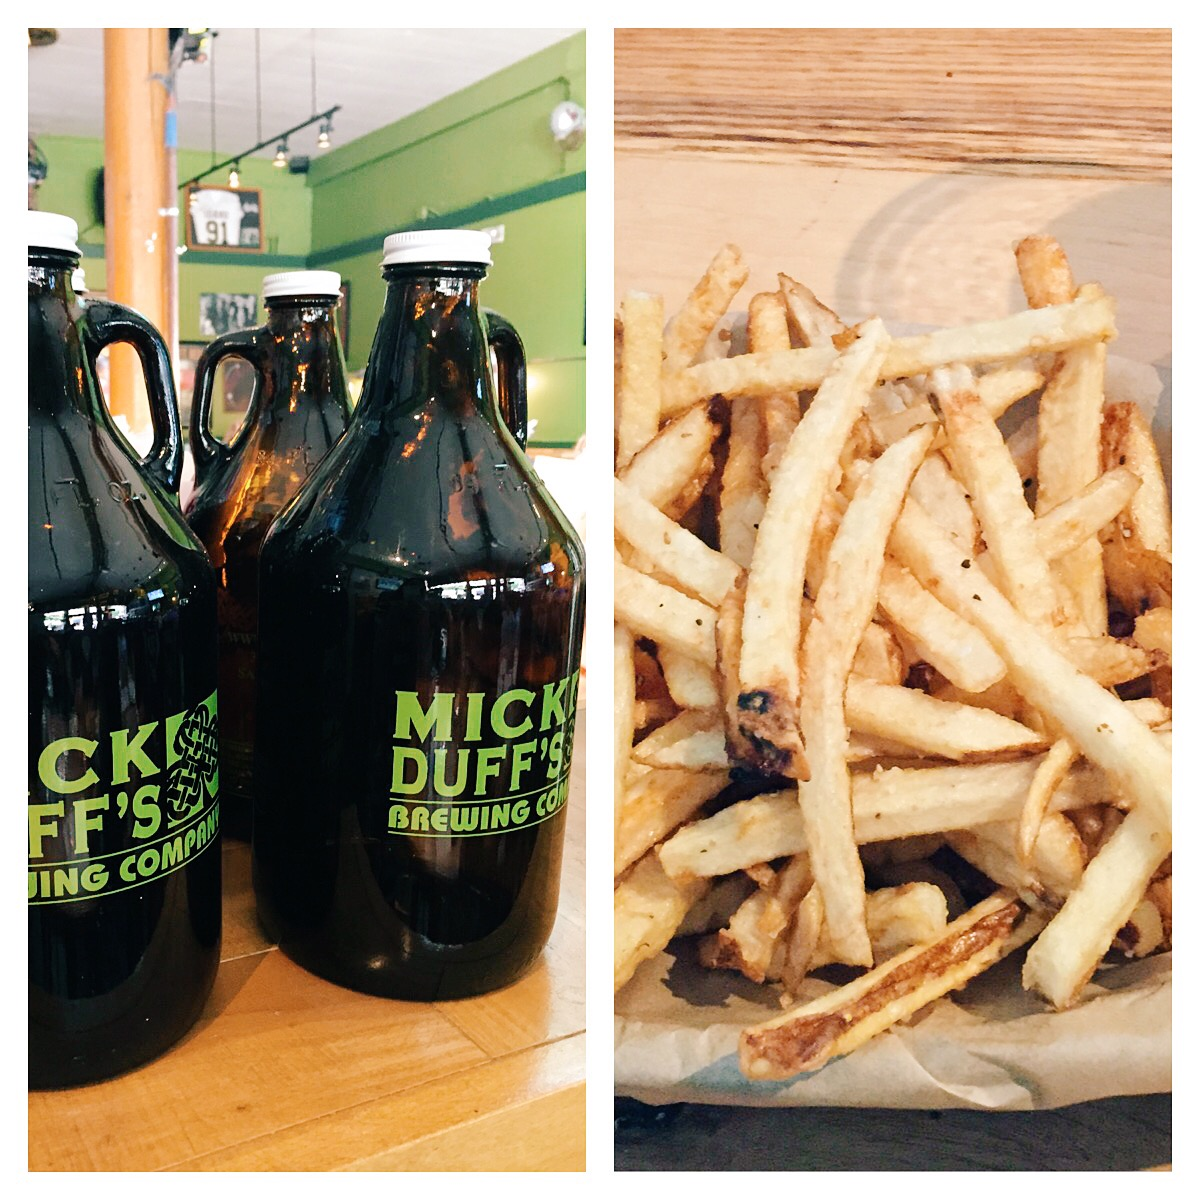 According to my hubby Mick Duff's has the best beer and french fries!